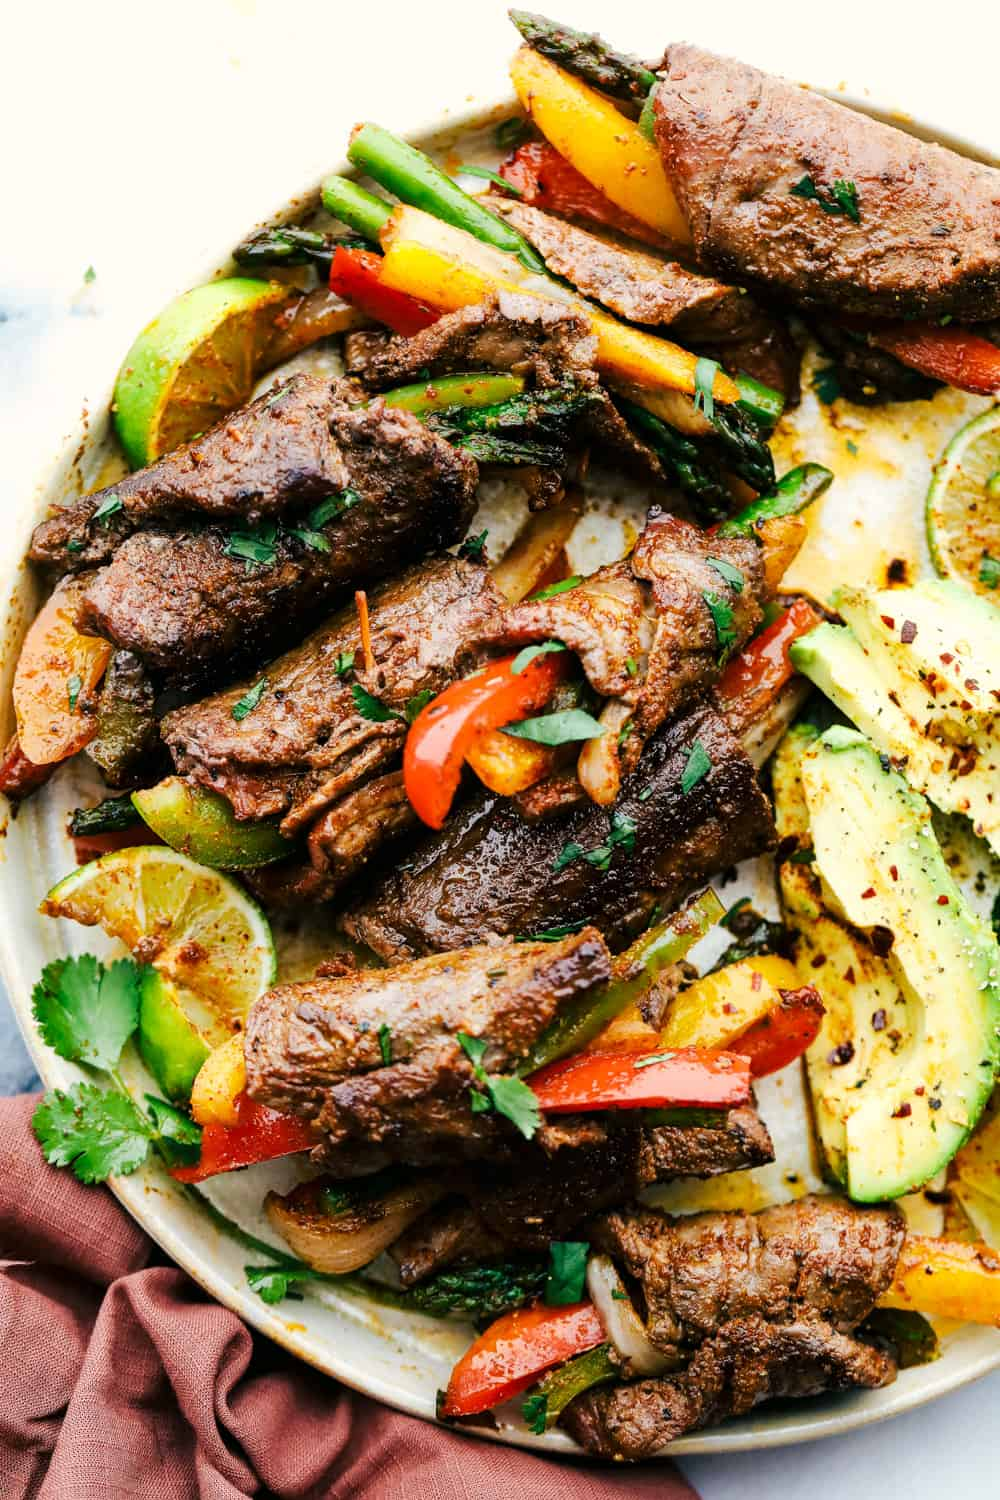 Bell peppers and asparagus wrapped up in flank steak with avocados on a plate.